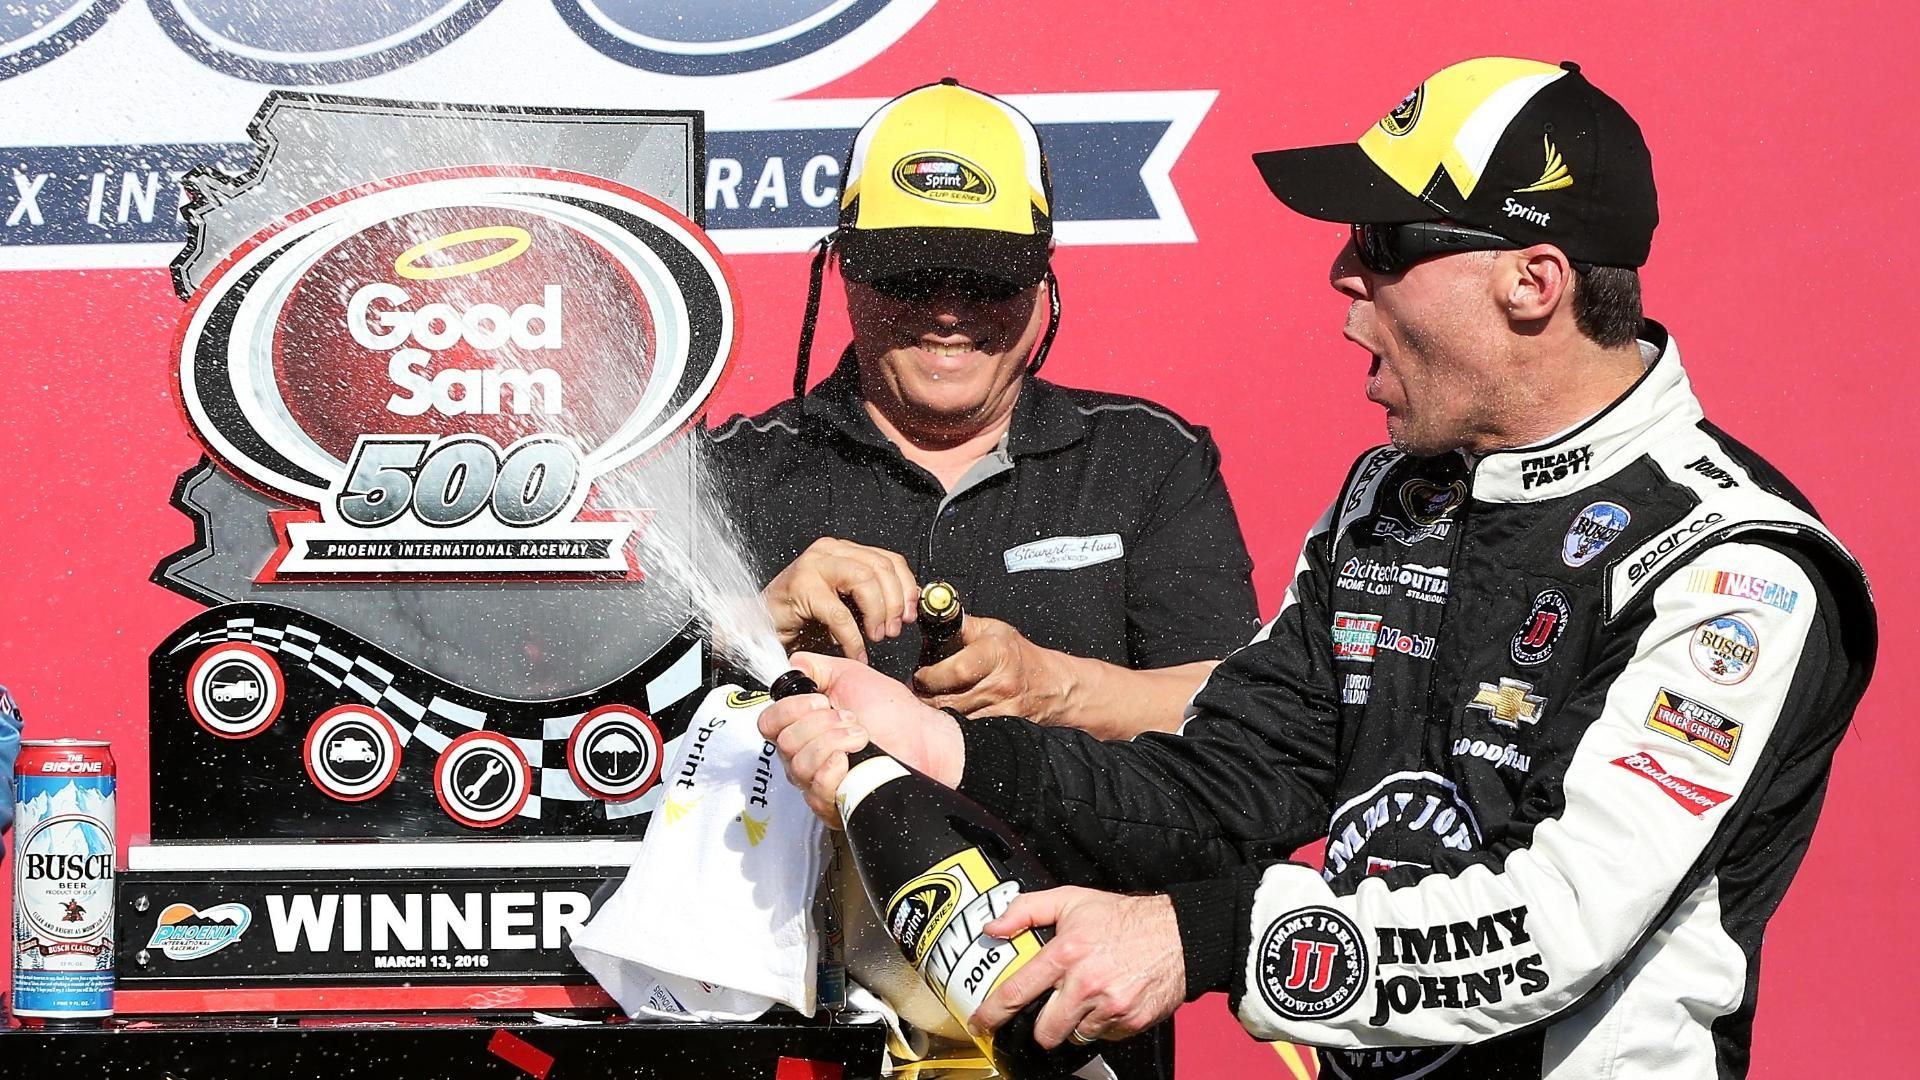 Harvick edges out Edwards for NSCS victory at Phoenix